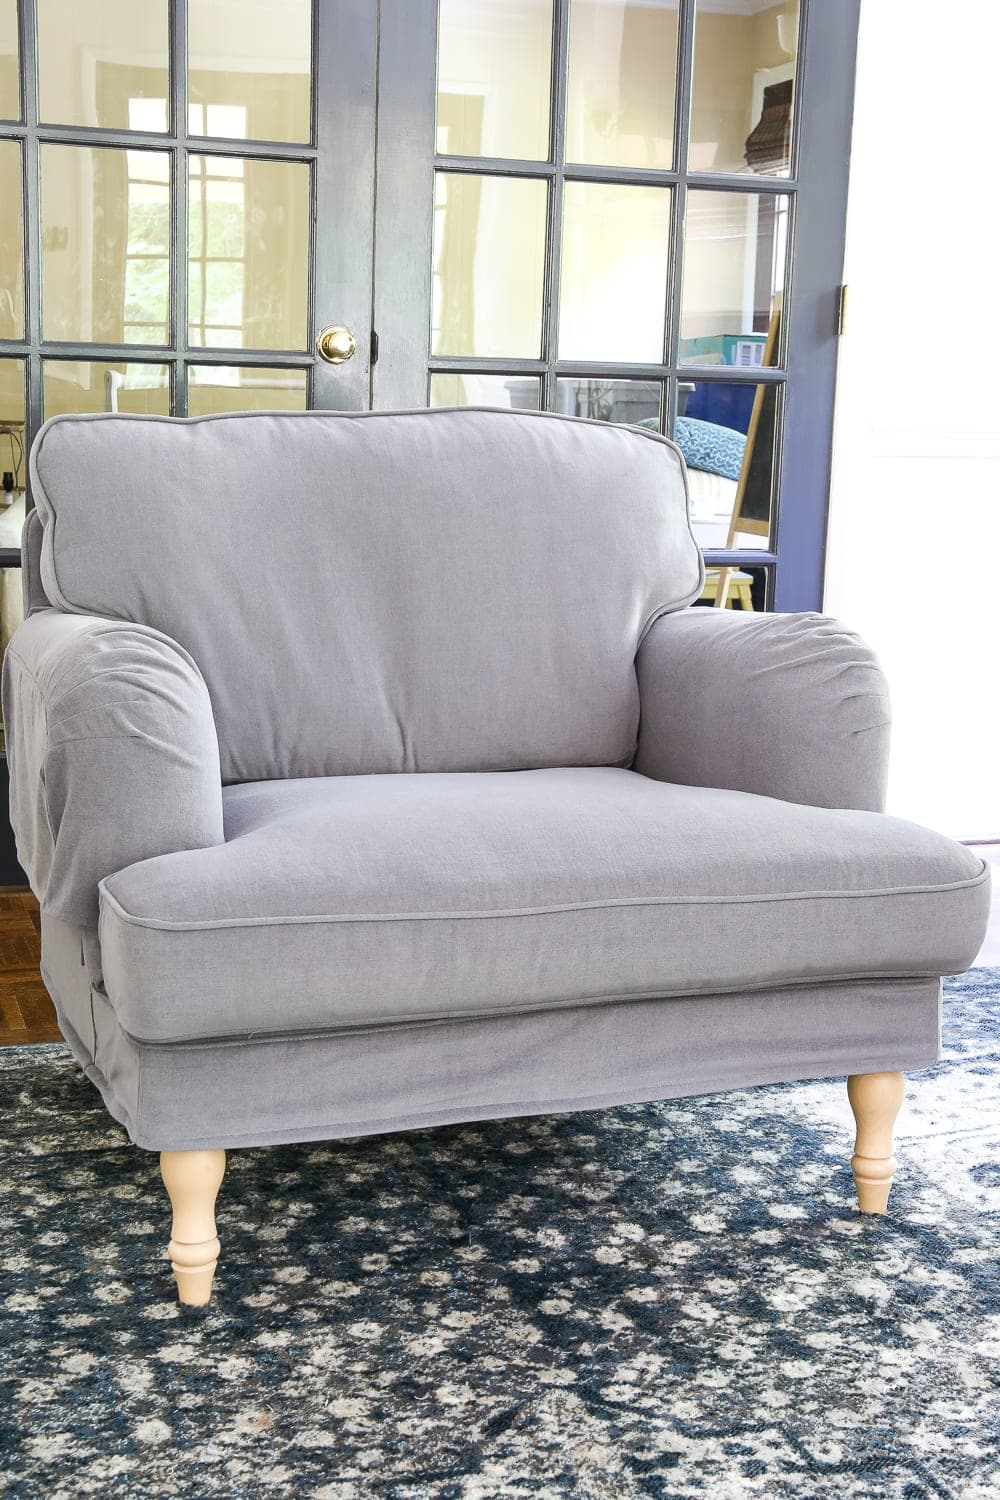 New IKEA Sofa And Chairs How To Keep Them Clean